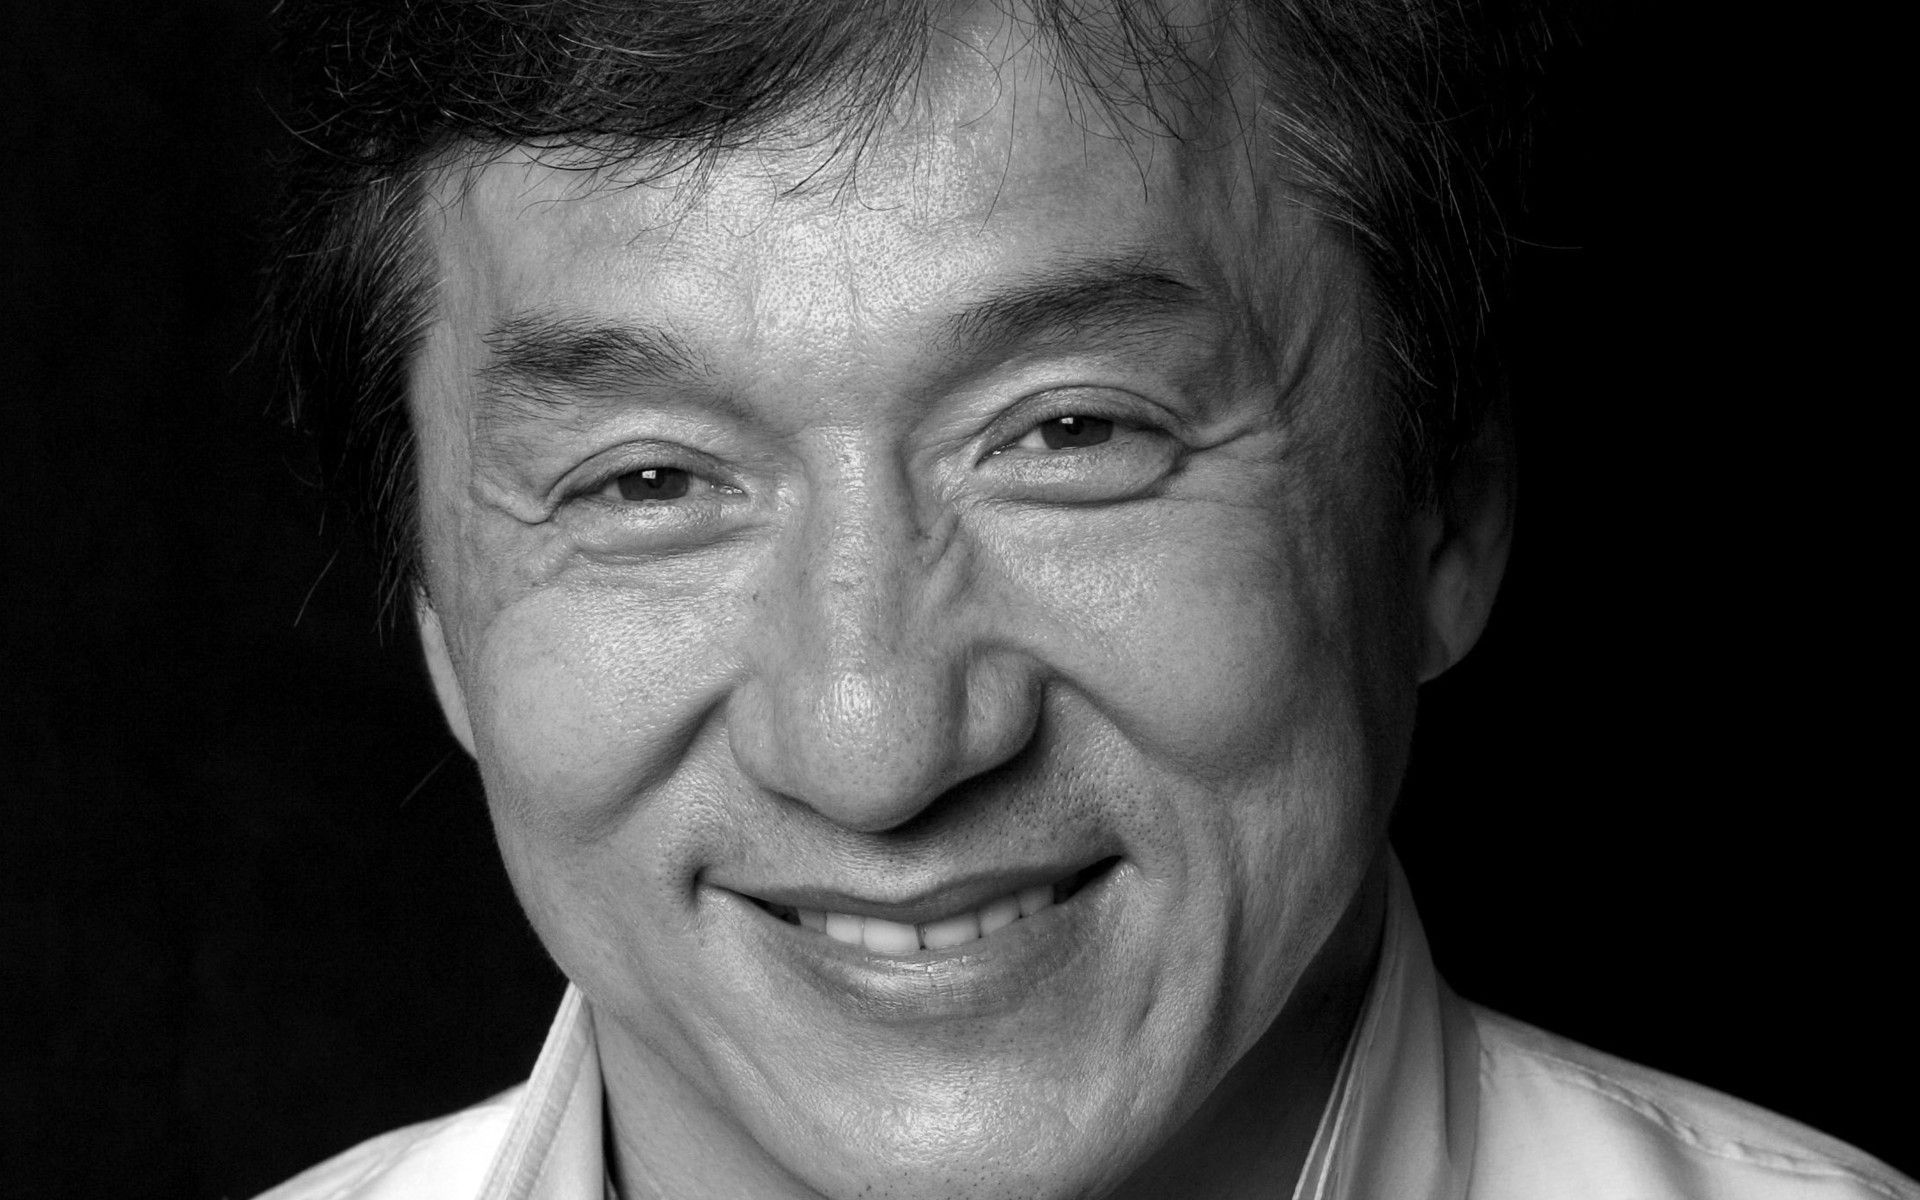 Image Detail For Free Download Hq Greyscale Photo Jackie Chan